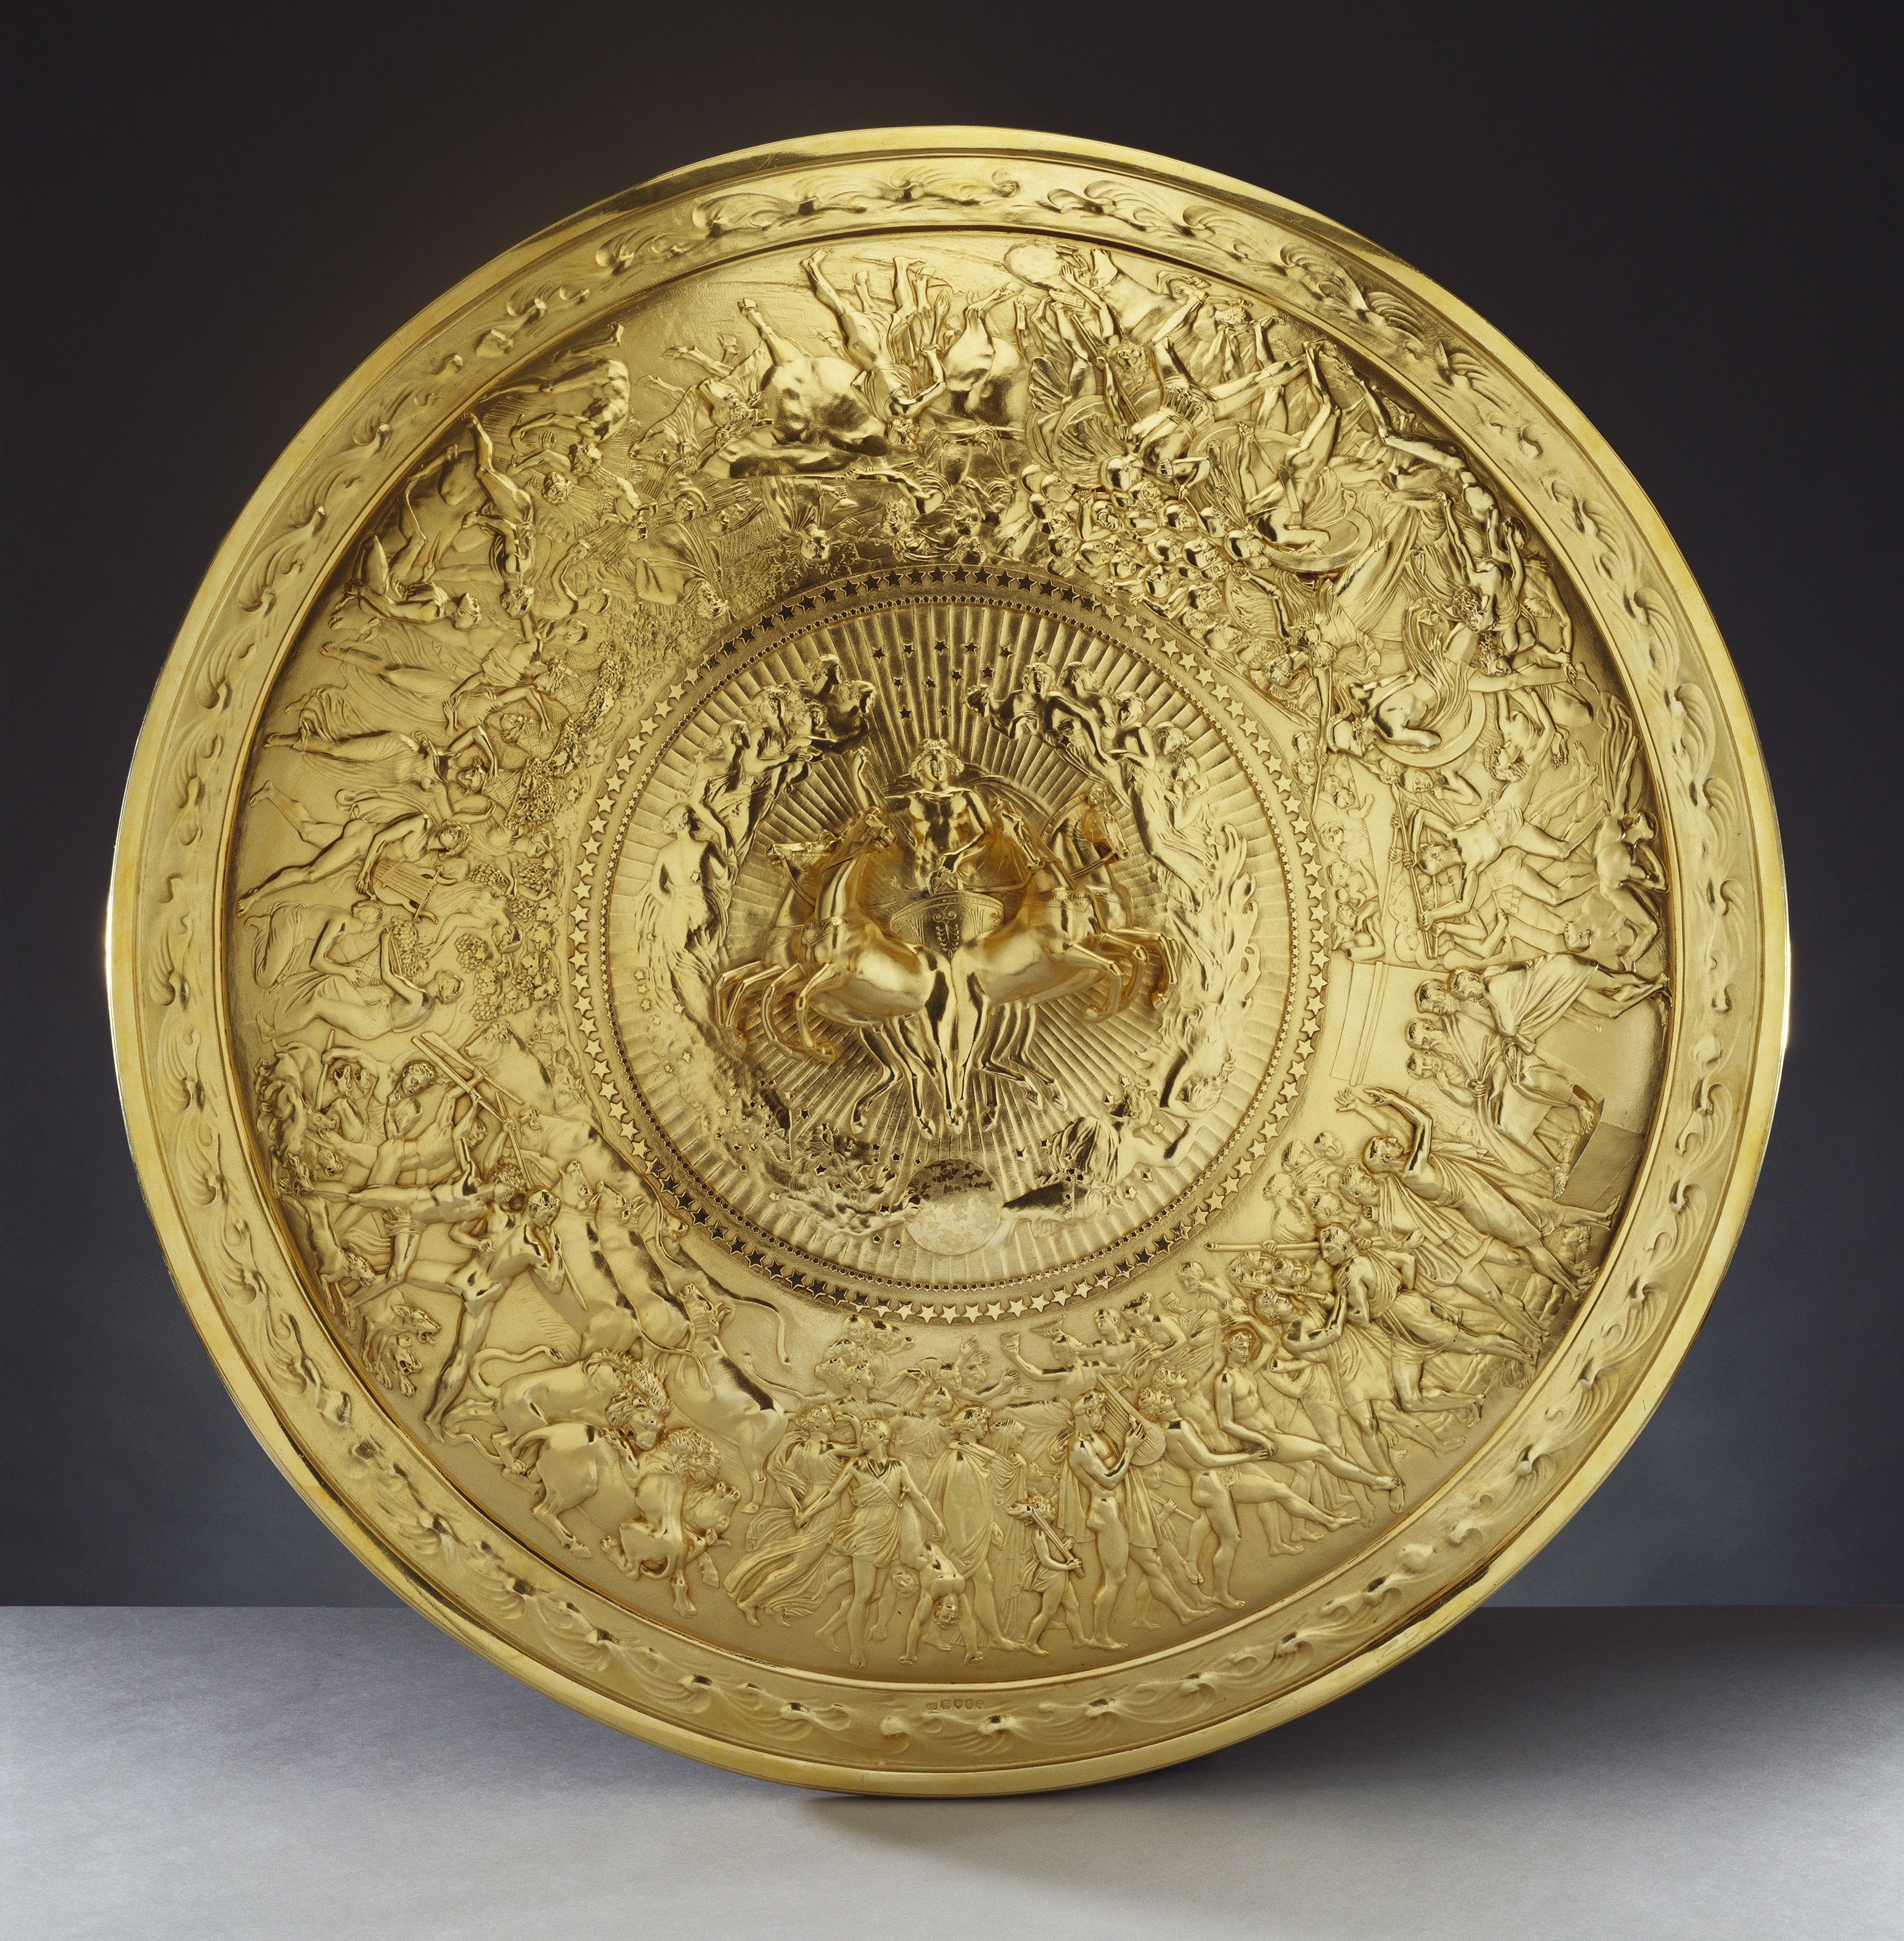 Philip Rundell, Shield of Achilles, 1821